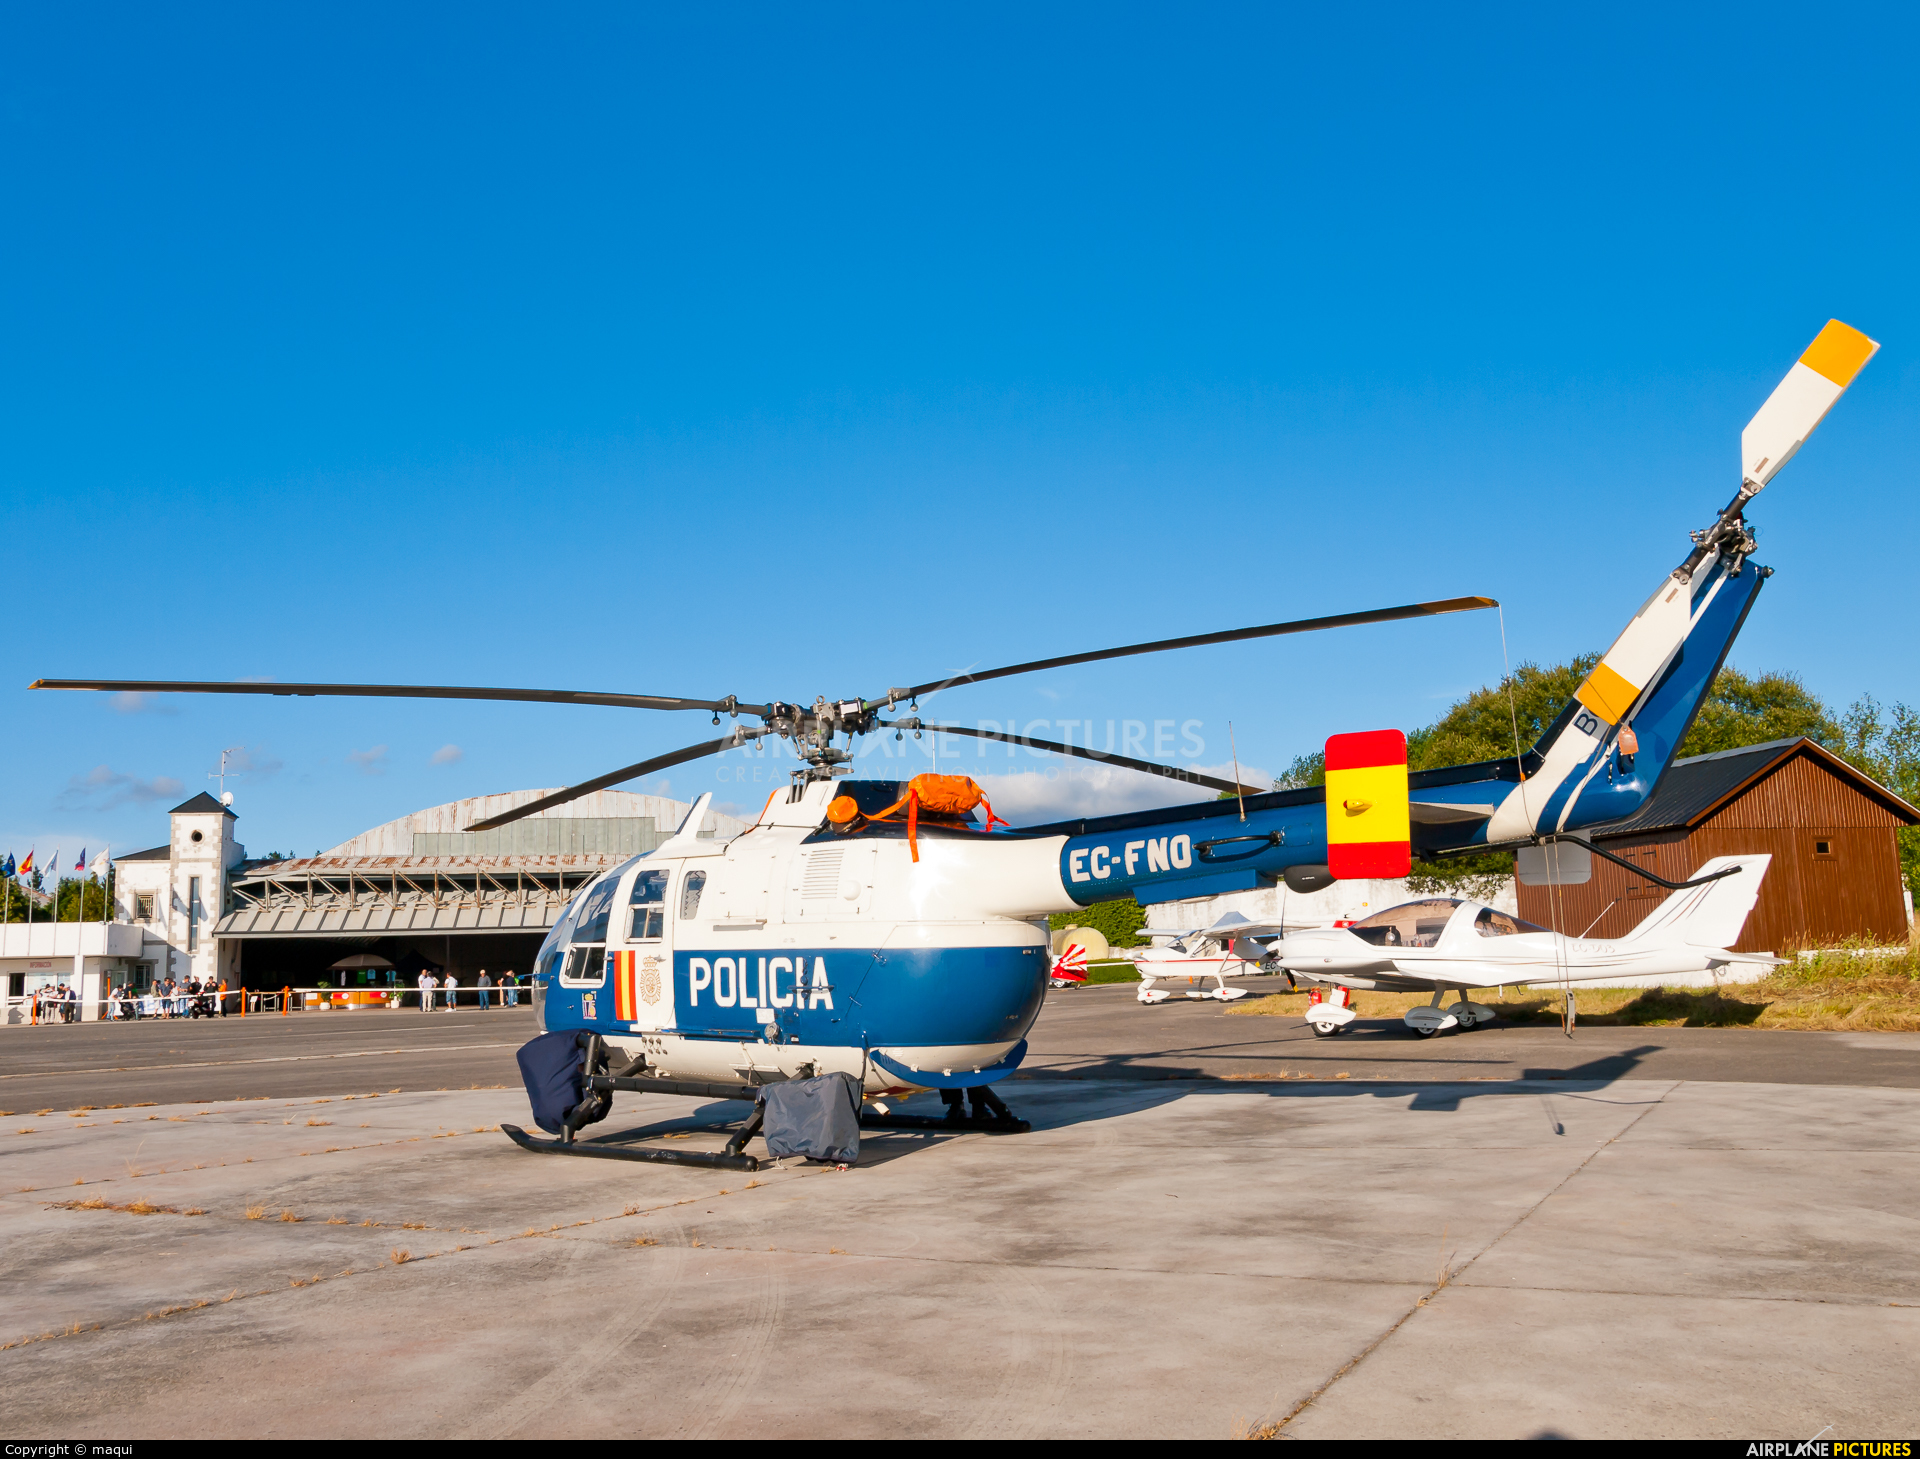 Spain - Police EC-FNO aircraft at Lugo - Rozas